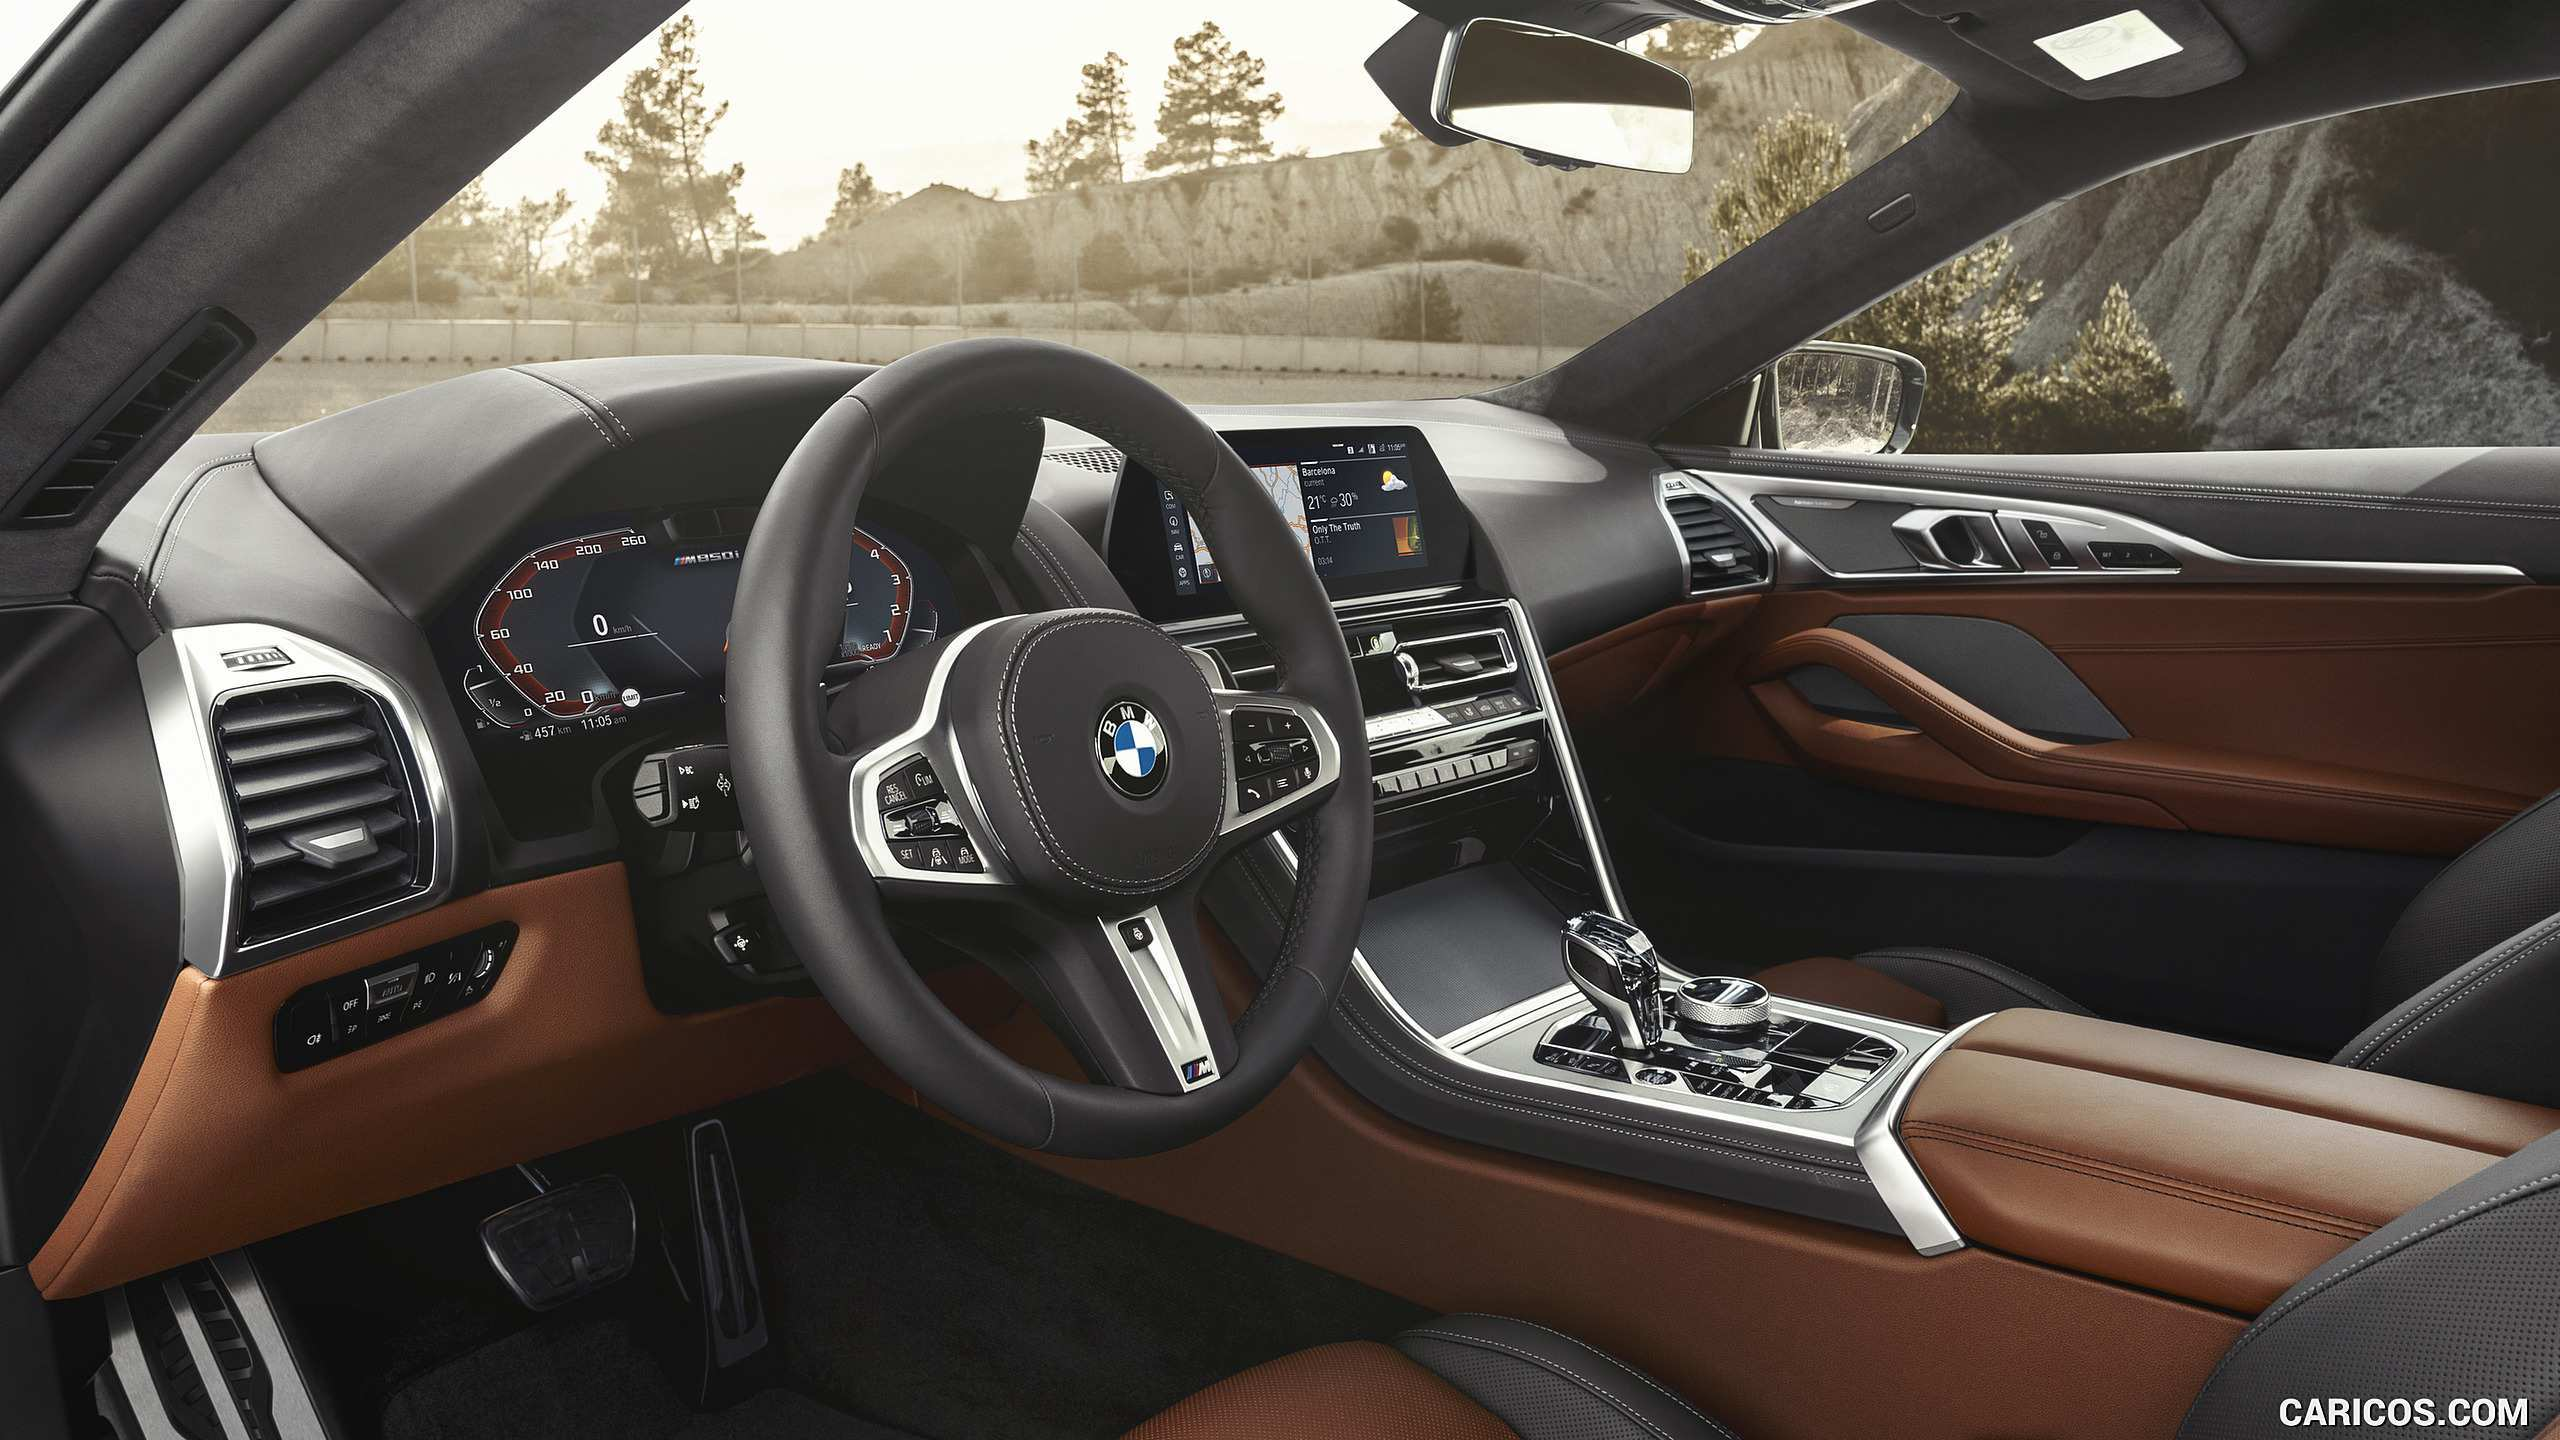 68 New 2019 Bmw 8 Series Interior Price with 2019 Bmw 8 Series Interior